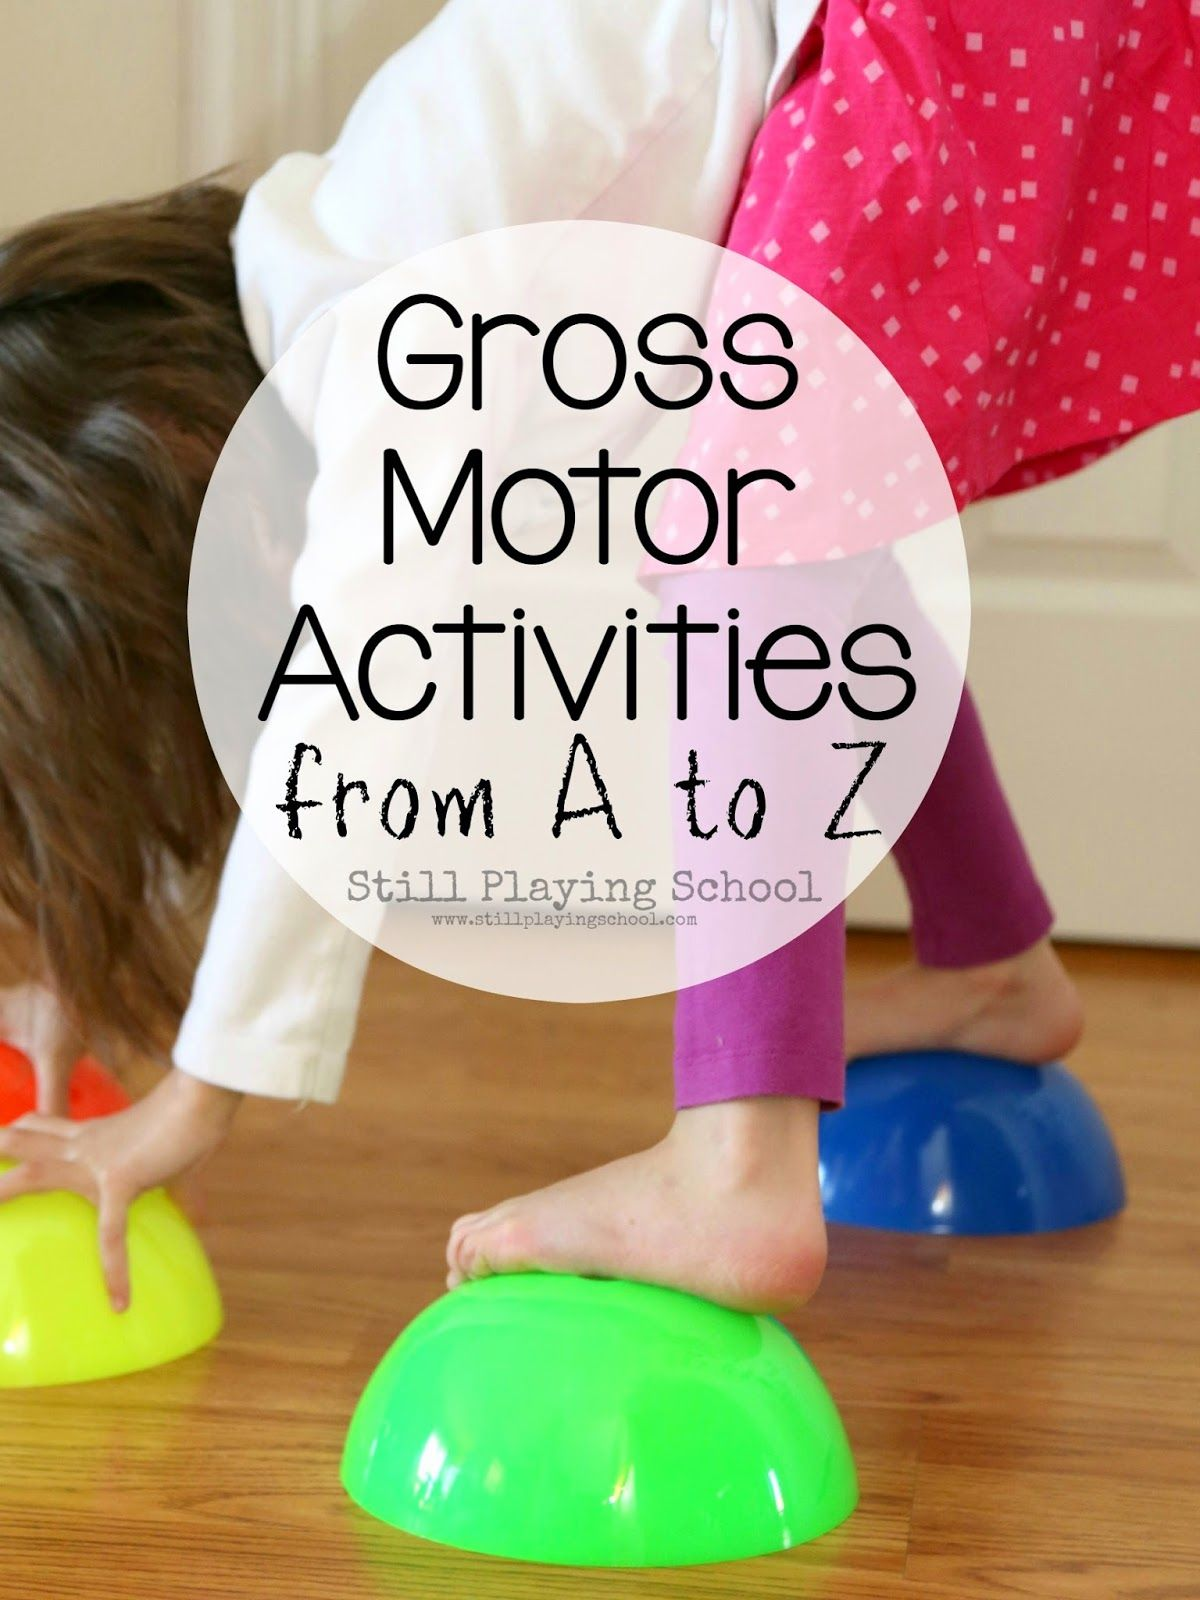 Active games for kids fun gross motor ideas from a to z for What are gross motor skills in child development